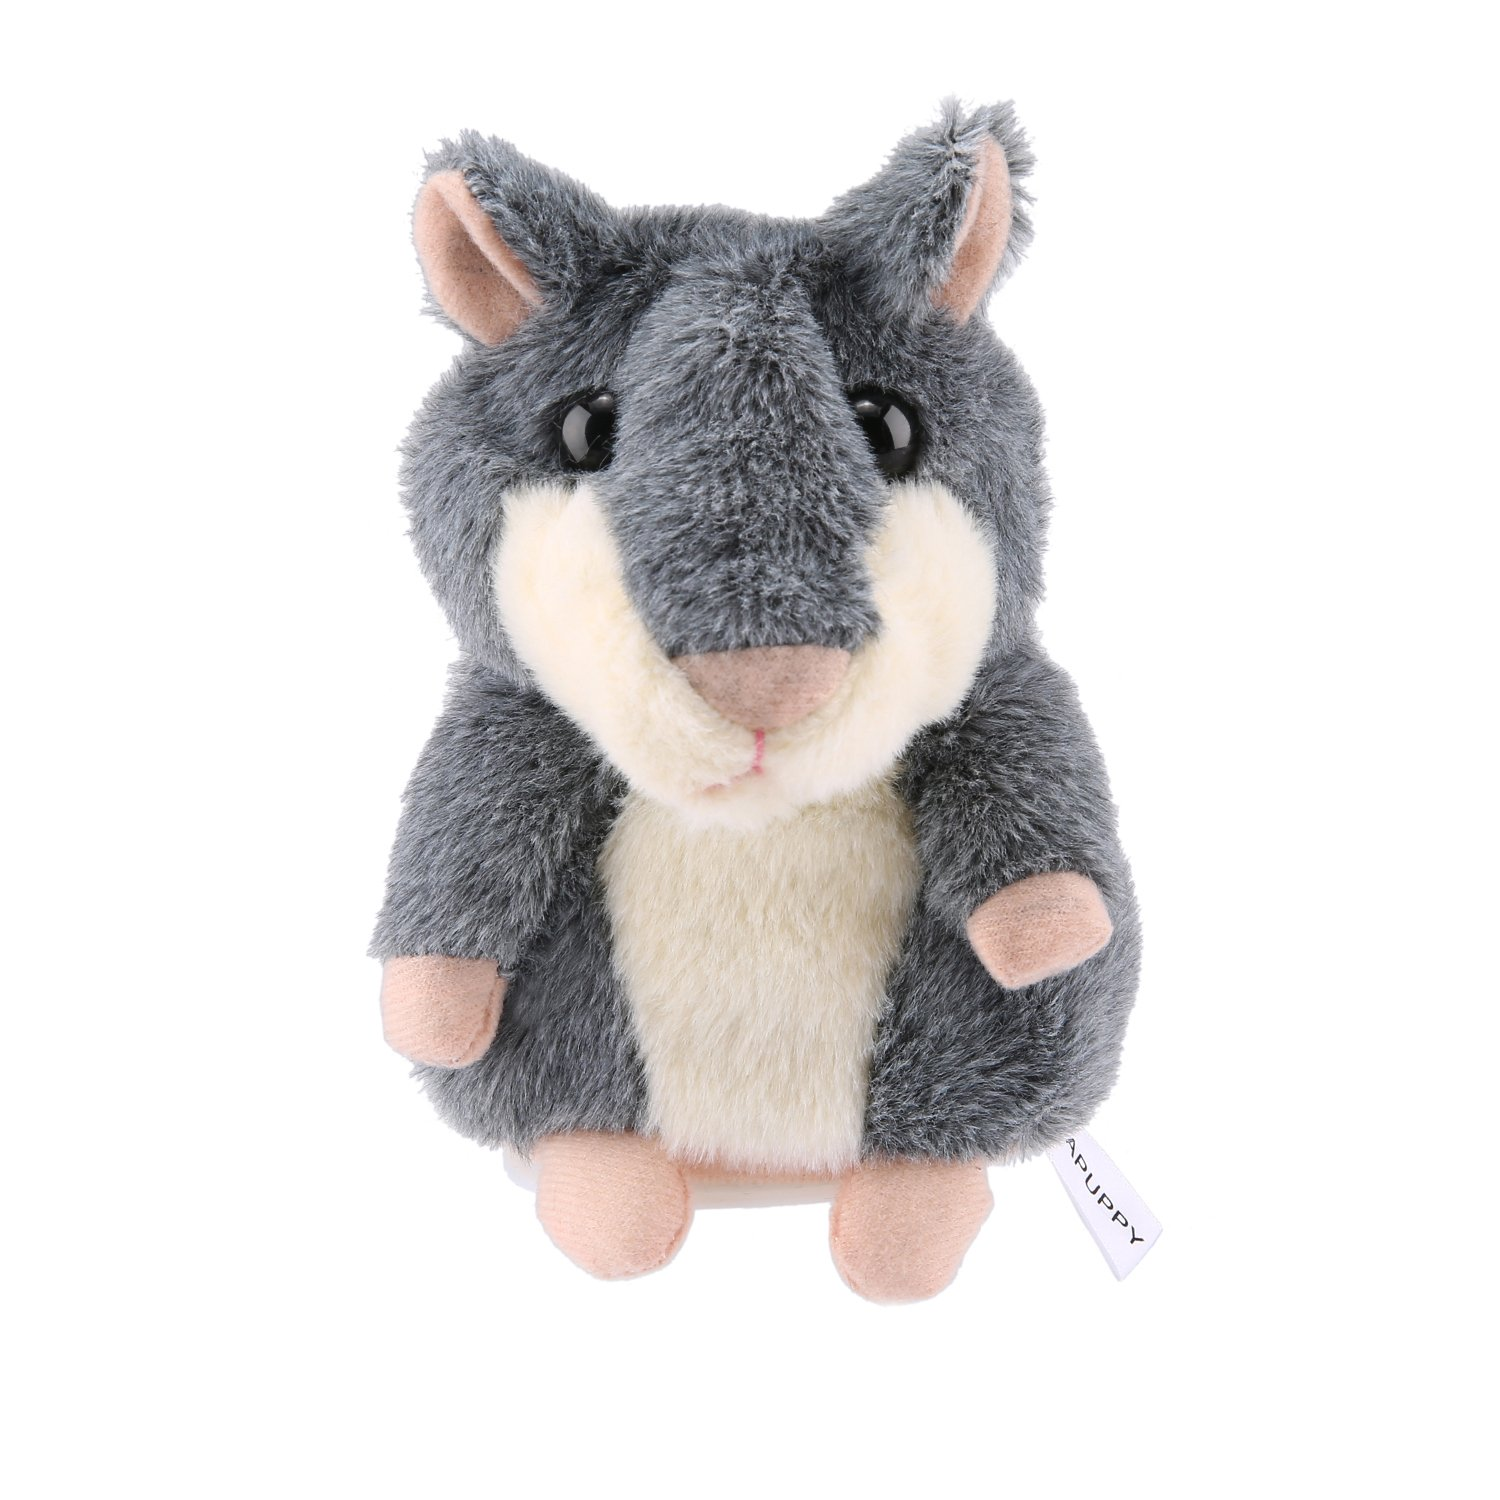 APUPPY Mimicry Pet Talking Hamster Repeats What You Say Plush Animal Toy Electronic Hamster Mouse for Boy and Girl Gift, 3 x 5.7 inches( Gray )